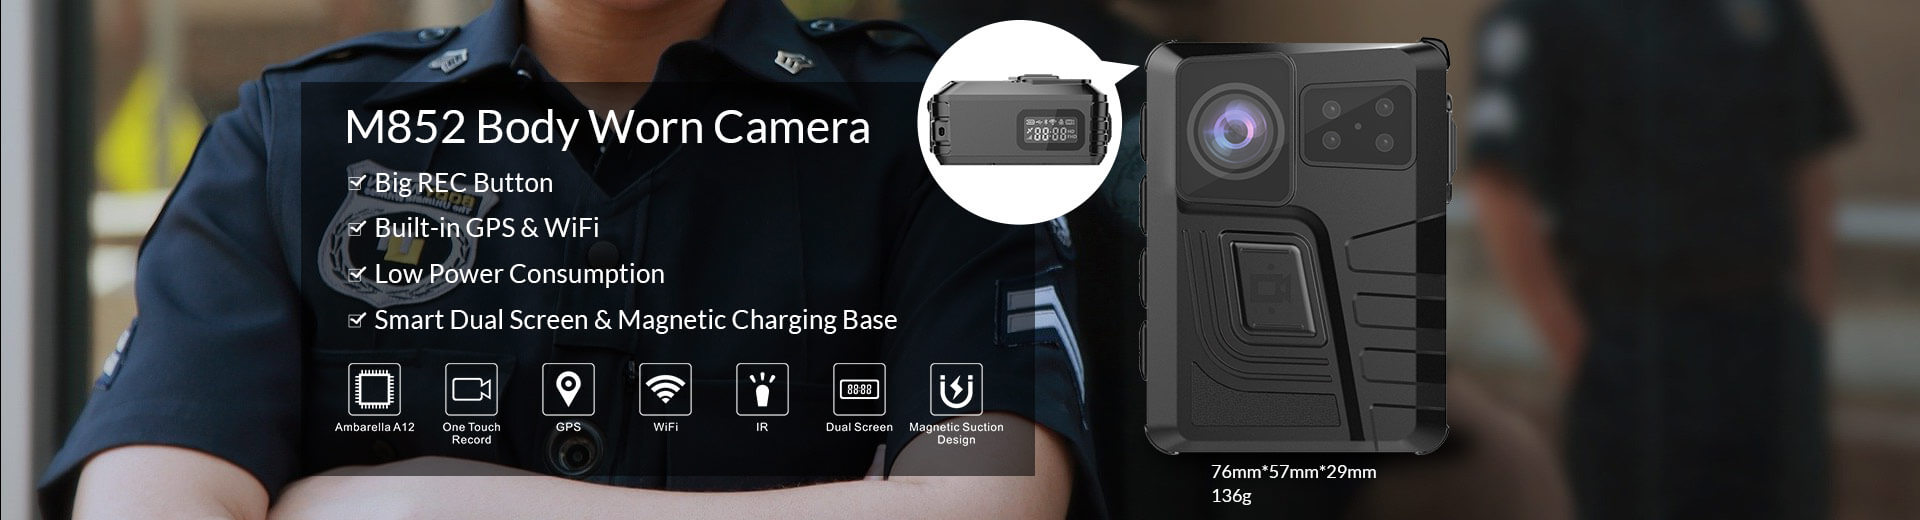 https://www.cammpro.com/body-worn-camera/m852-police-camera.html